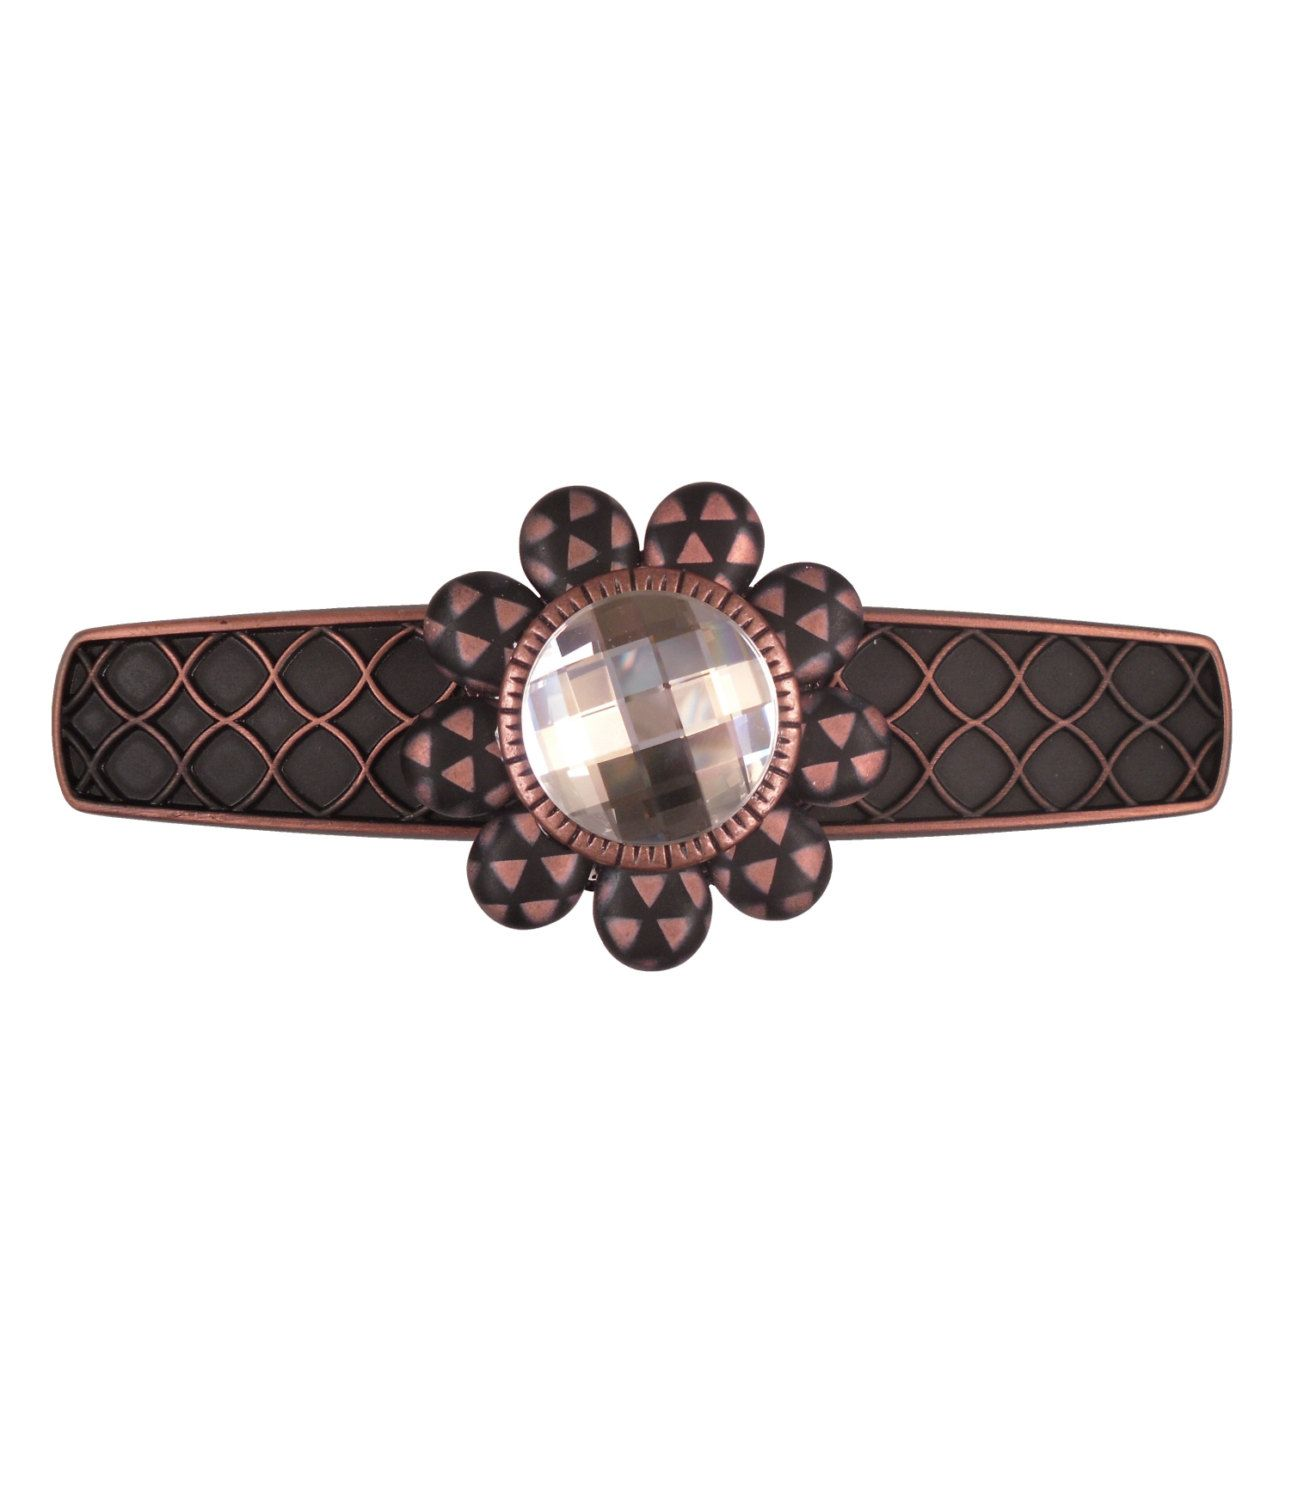 """Decorative Drawer Pull/Swarovski Crystal Door Handle/Art Deco Furniture Pull/Copper Pull/Unique Drawer Pull/Modern Kitchen Cabinet Pull/3"""" by ArtfulSparkle on Etsy"""